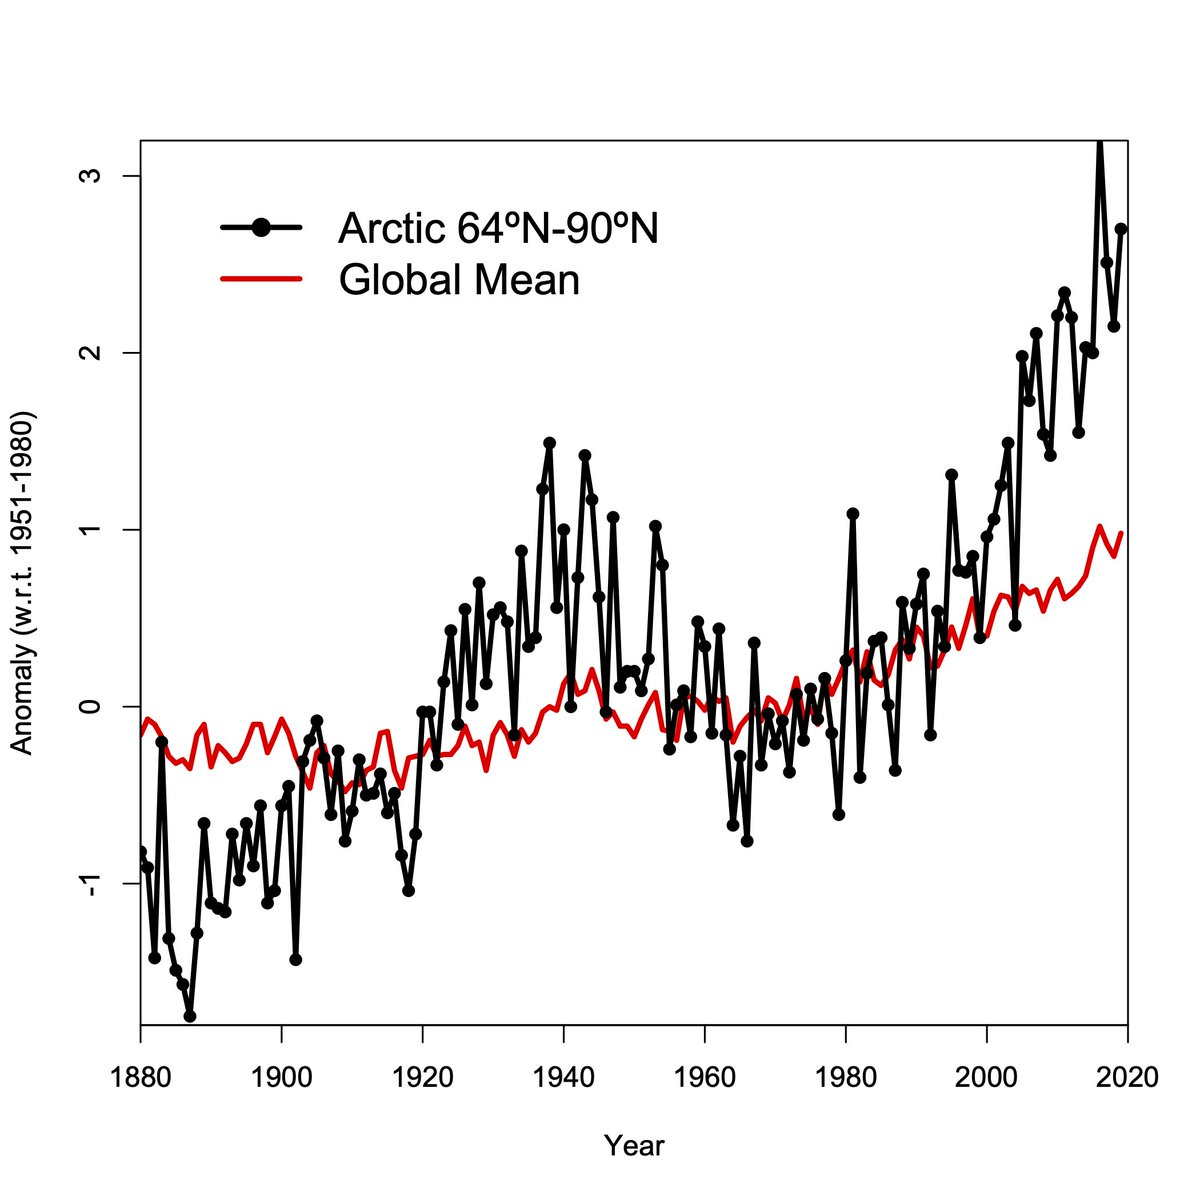 The Arctic warming is getting a lot of attention this week, but I keep seeing references to the warming being twice as fast as the global mean, and that's not right.   It's more like 3 times the global mean. https://t.co/n87VwaoQav